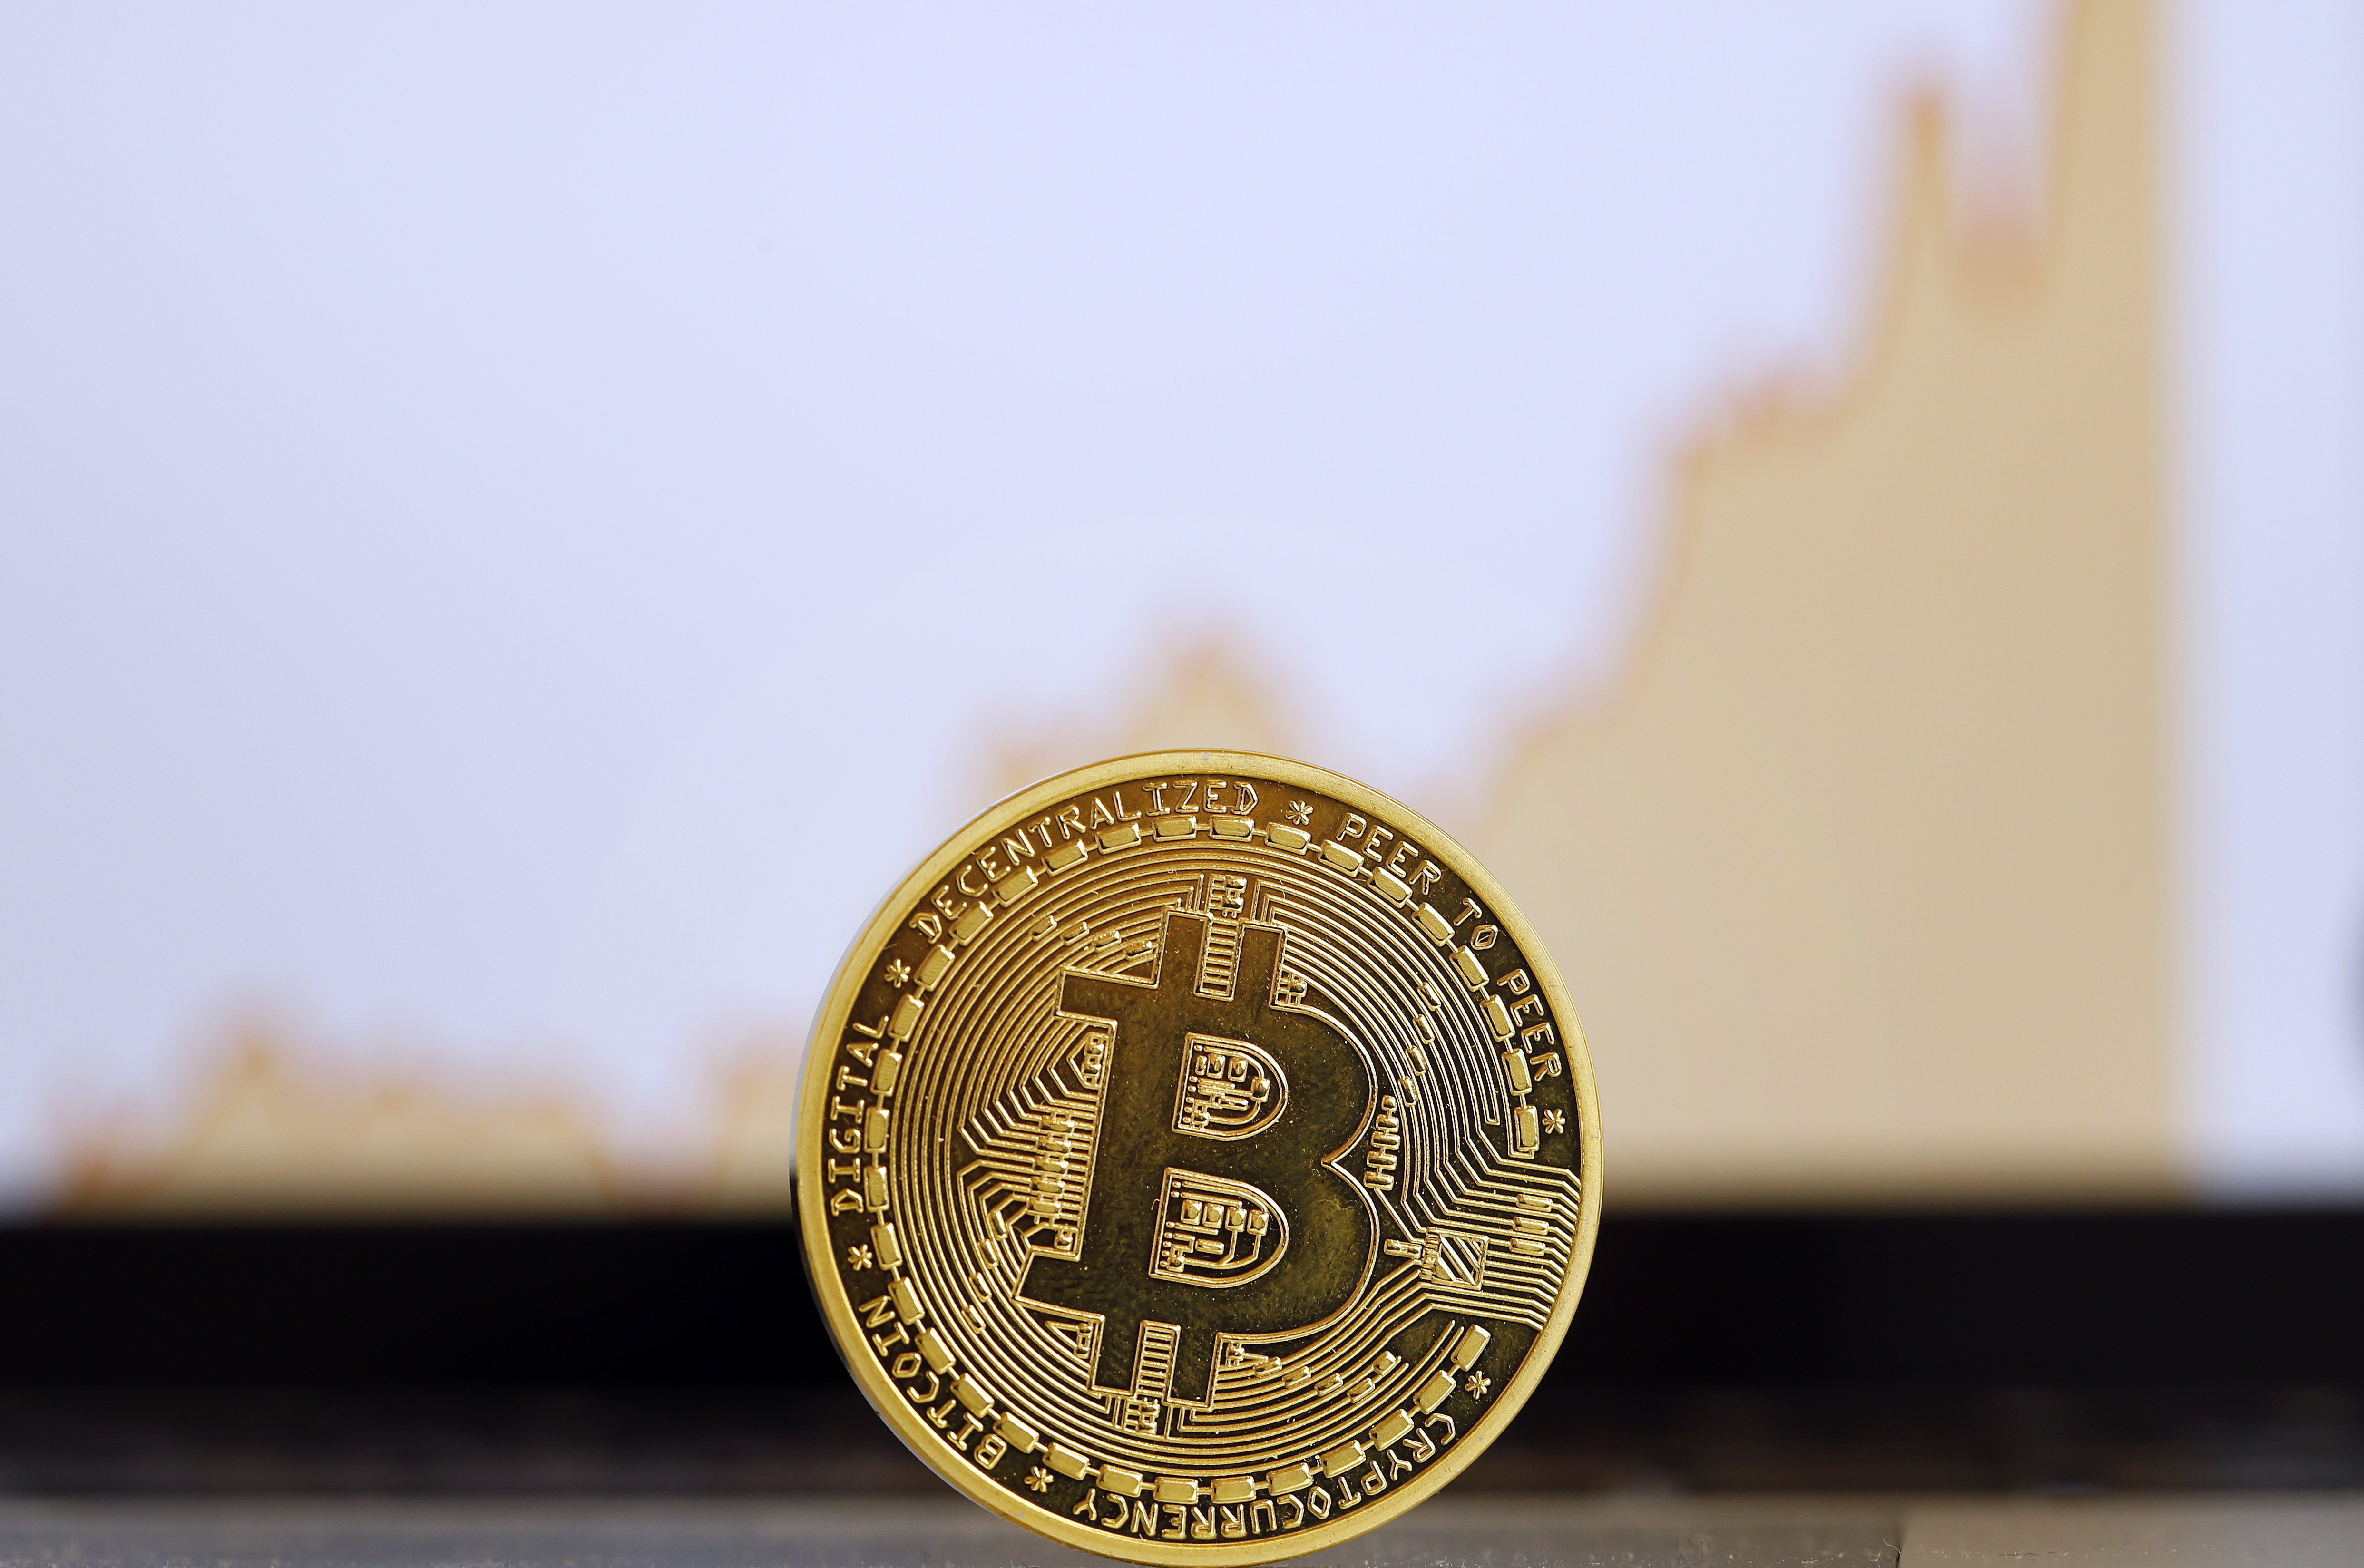 The digital cryptocurrency Bitcoin is visually displayed as a physical coin in front of a price chart is displayed on November 30, 2017 in Paris, France.